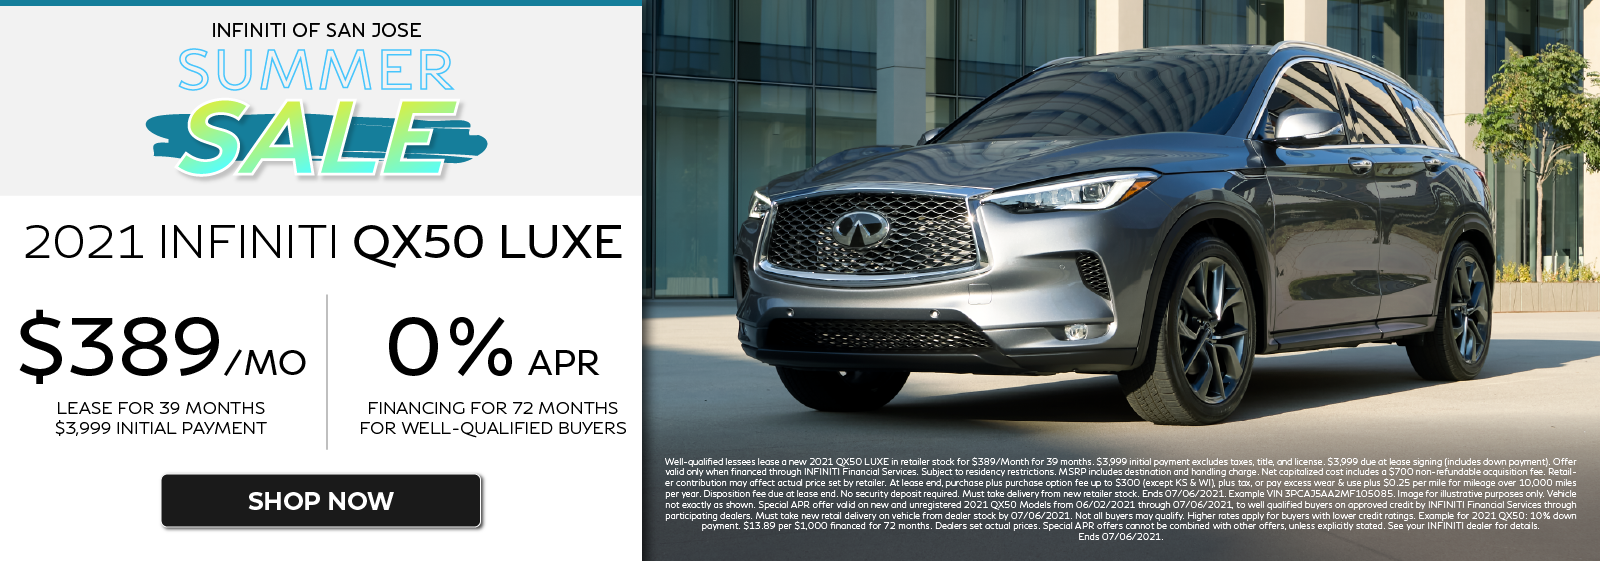 2021 QX50 LUXE Lease and APR Offers. Click to shop now.